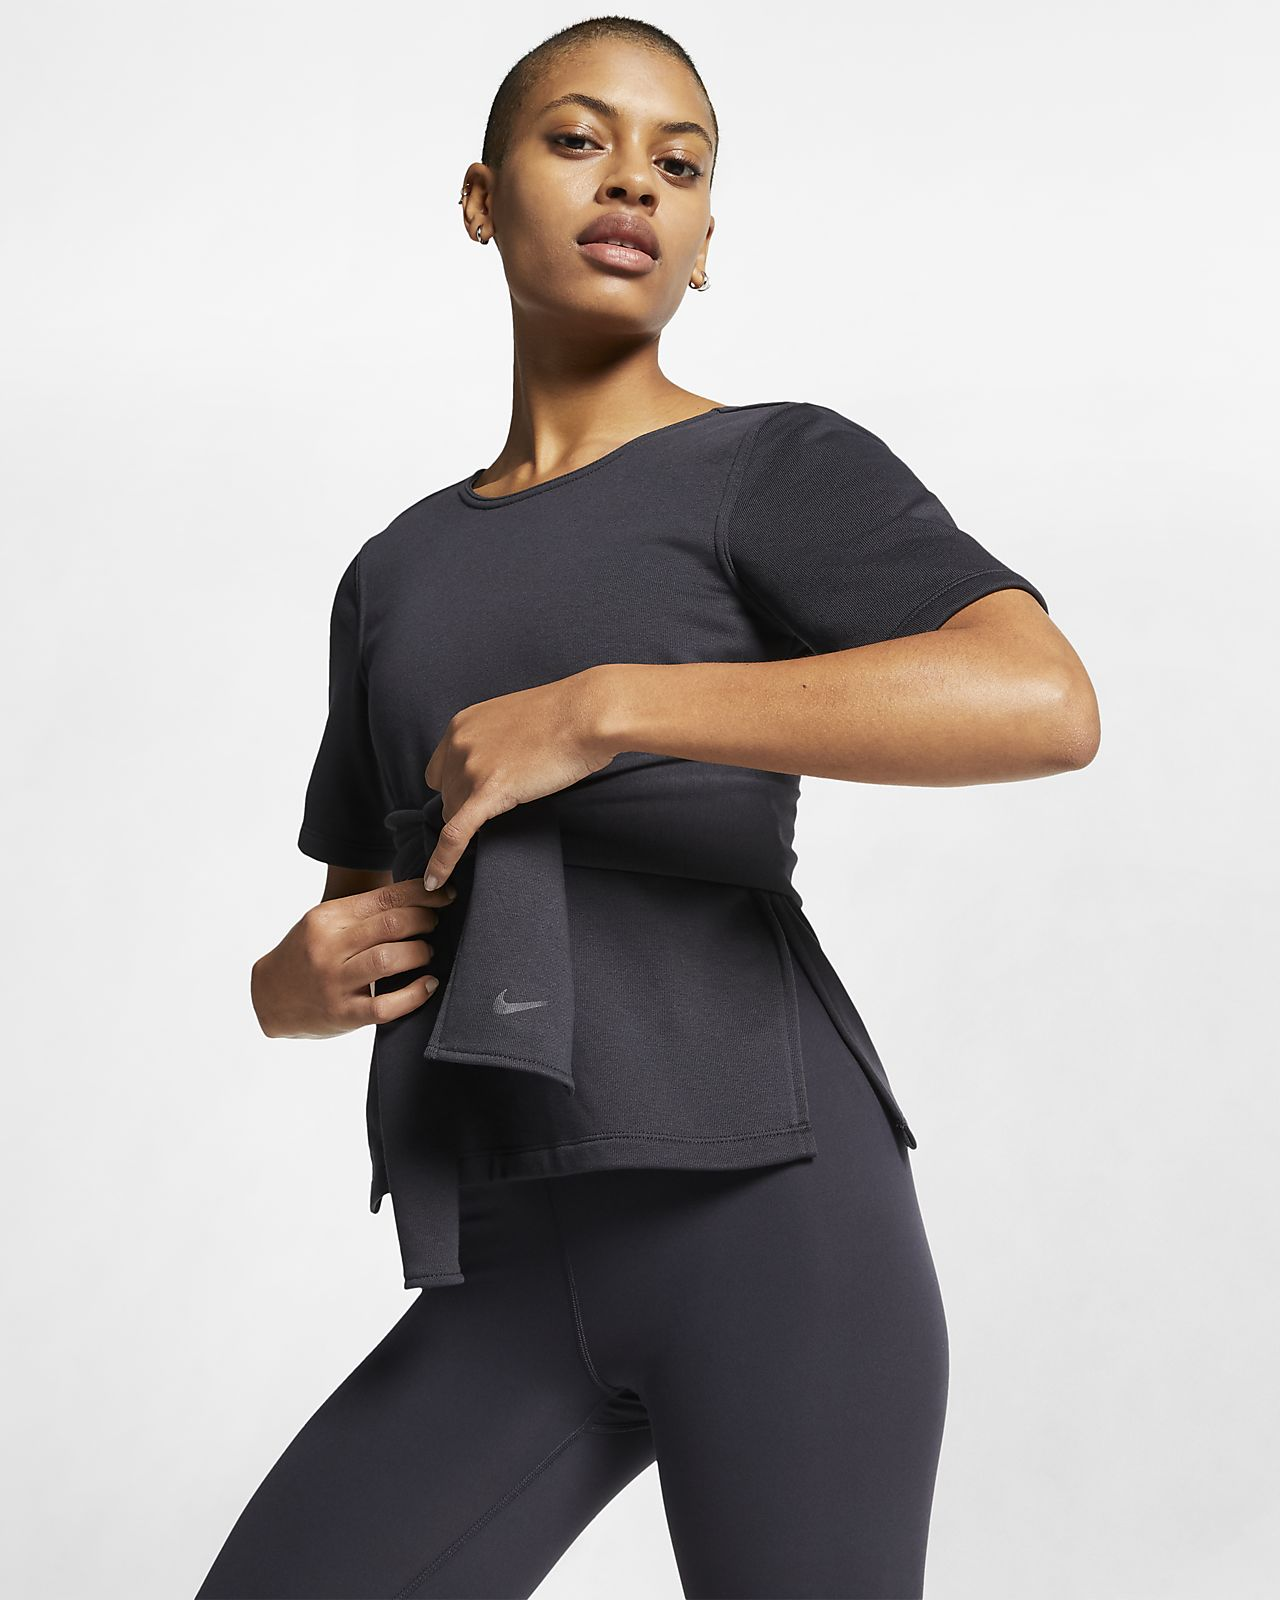 Nike Studio Women's Short-Sleeve Yoga Training Top